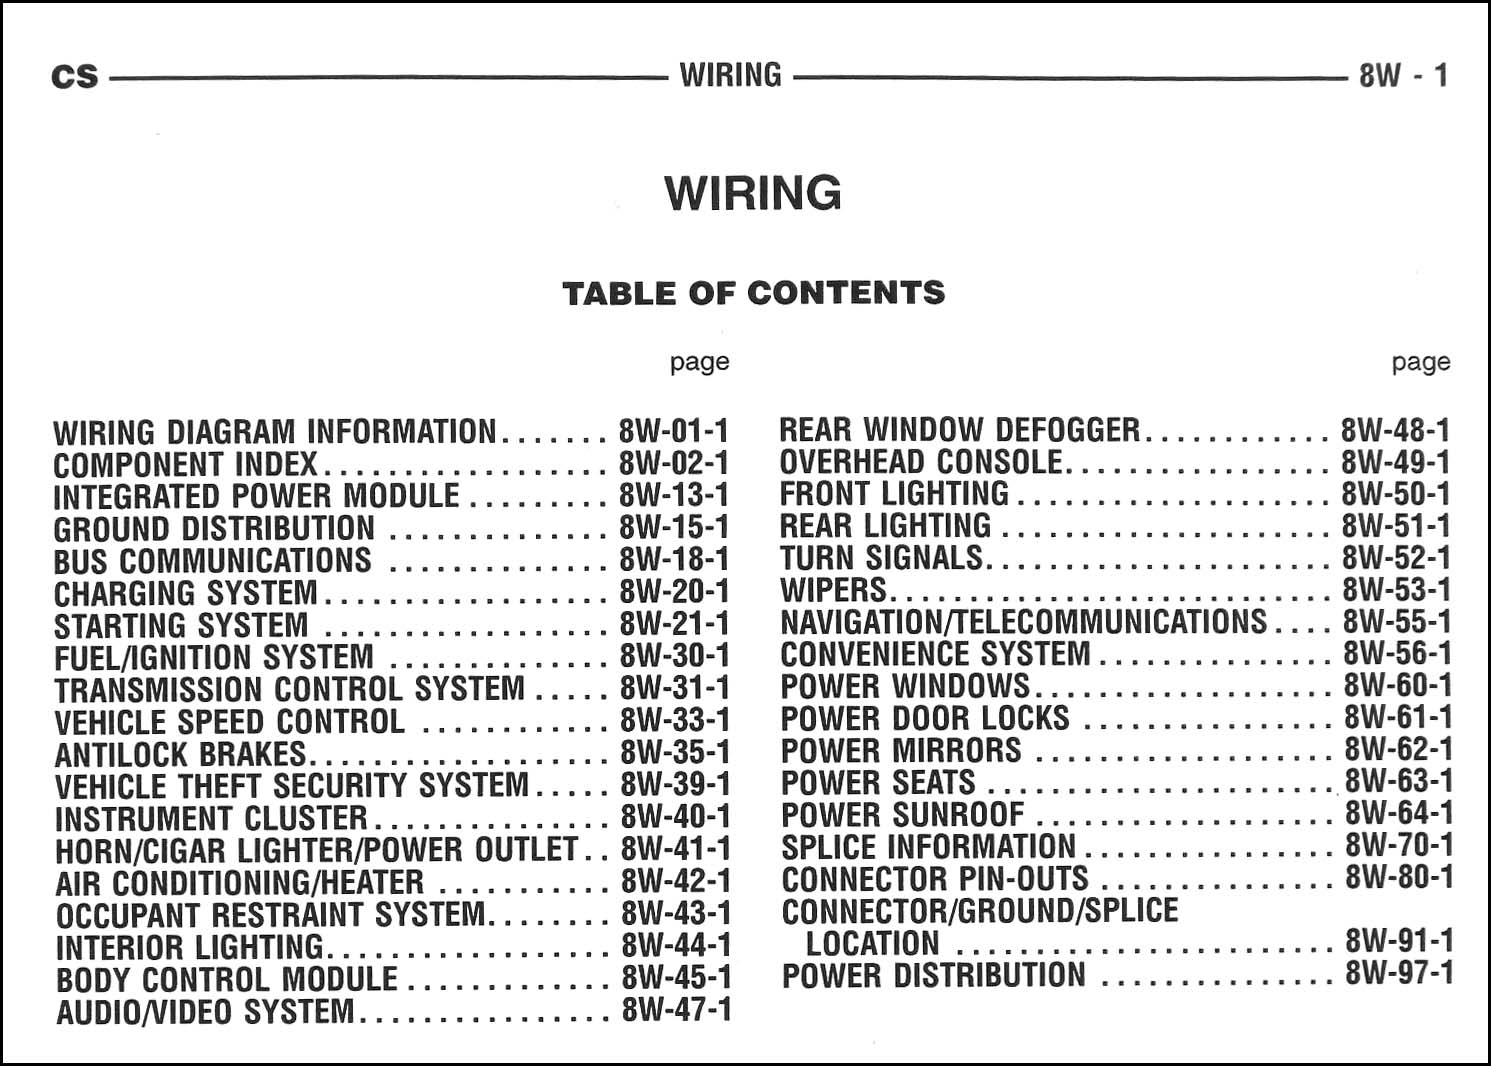 2005 Chrysler Pacifica Wiring Diagram Manual Original · Table of Contents  Page